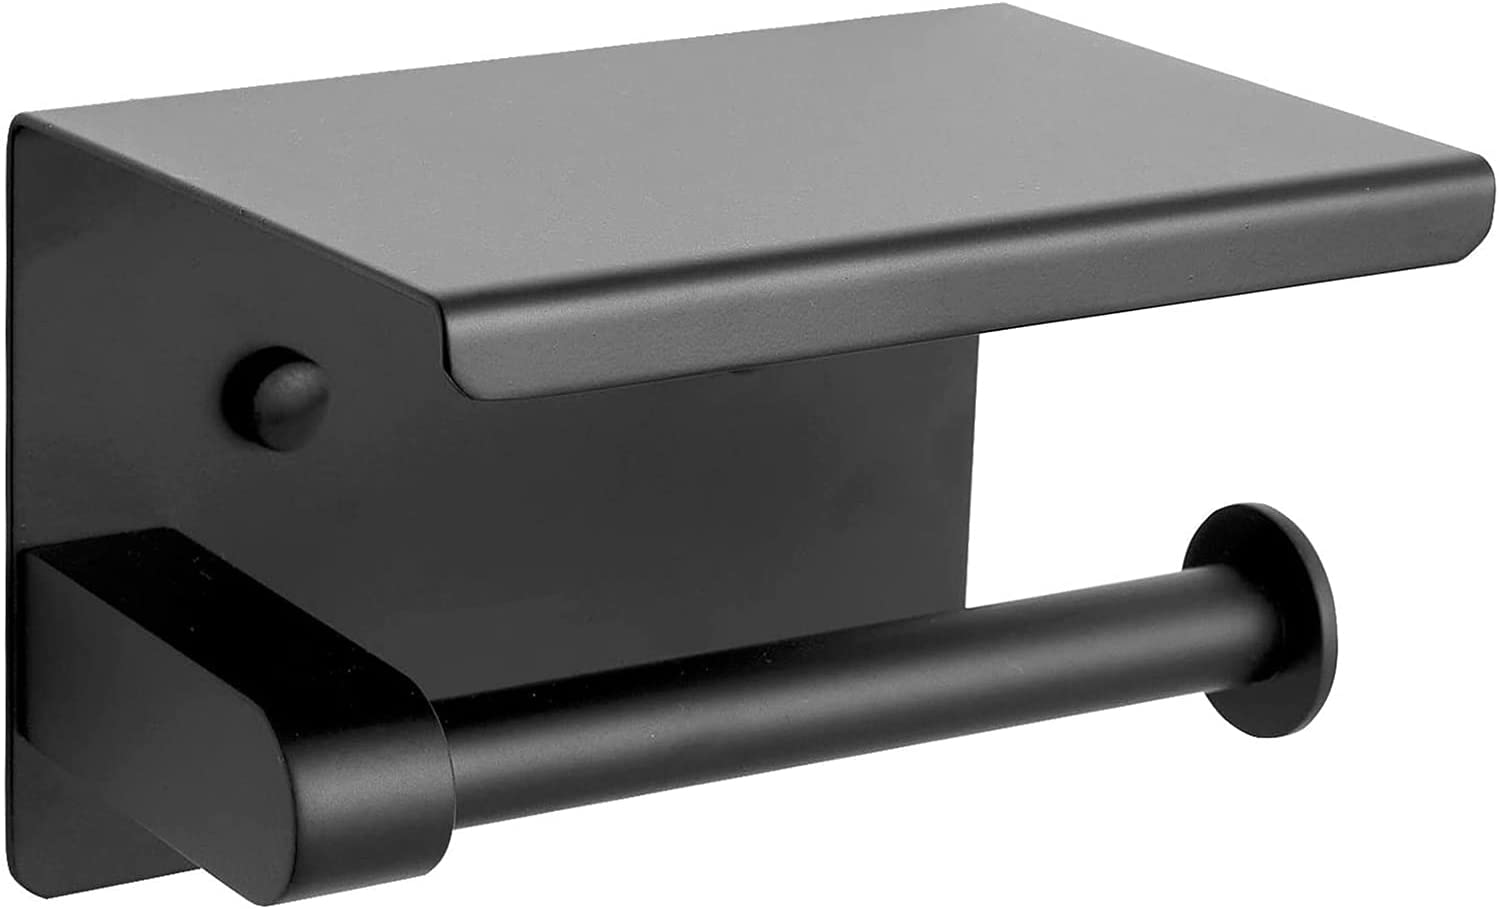 National products Matte Black Free Shipping New Tissue Roll Dispenser Steel Storage Stainless Paper